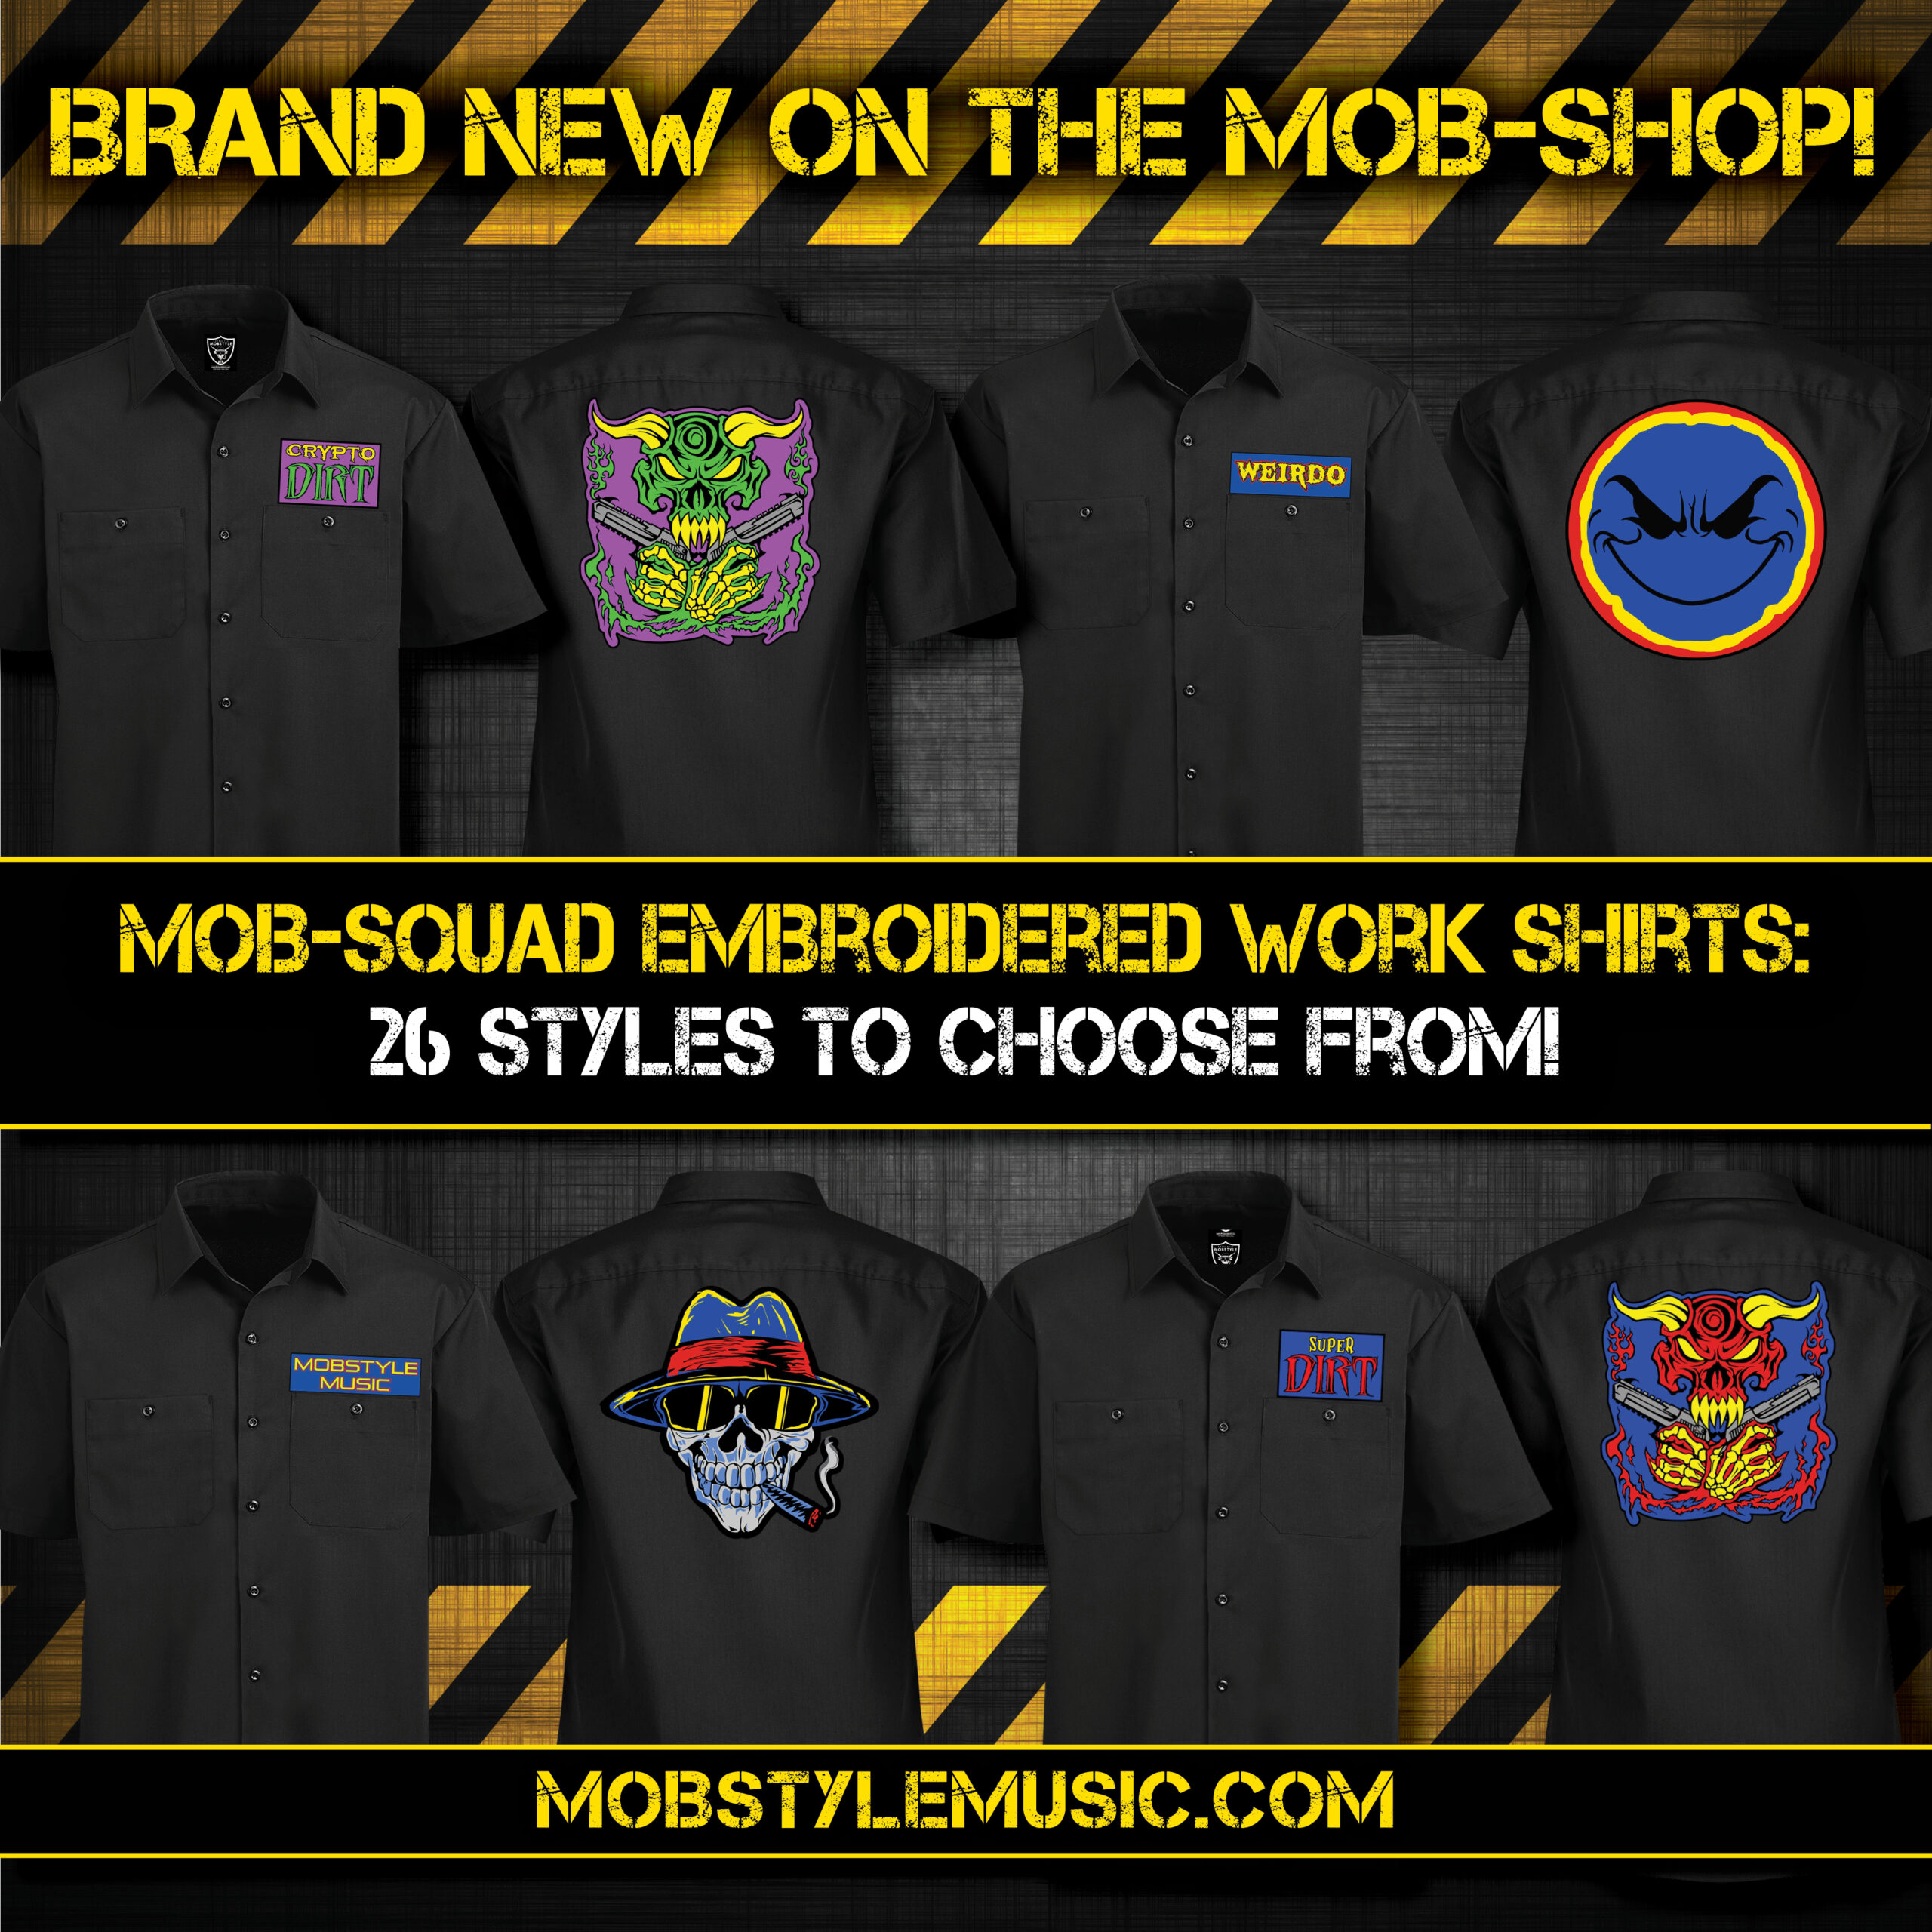 Mob-Squad Embroidered Work Shirts – 28 Styles To Choose From!